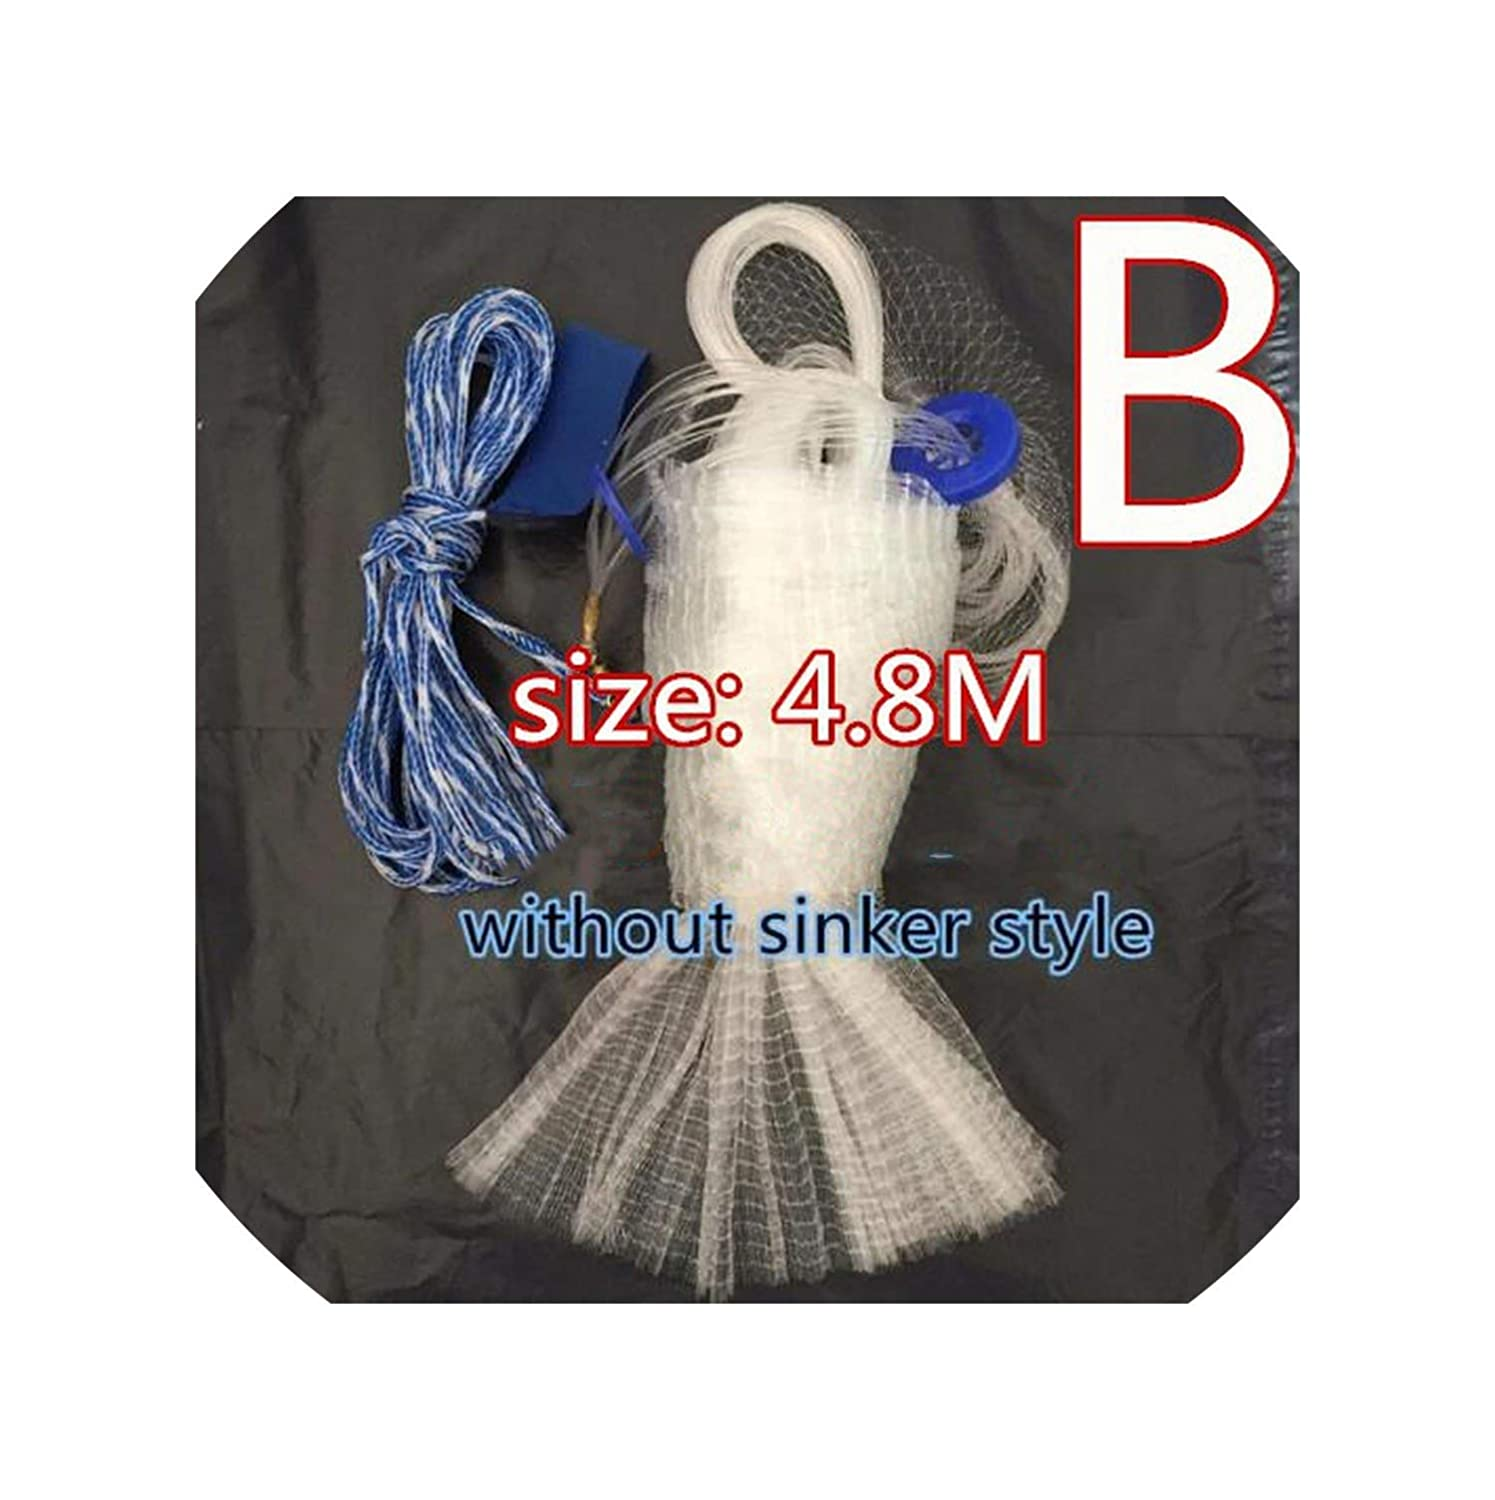 480cm without sinker Catch Fishing Net Cast Nets Water Hand Throw Fly Fishing Network Small Mesh Gill Net with Sinker and Without Sinker